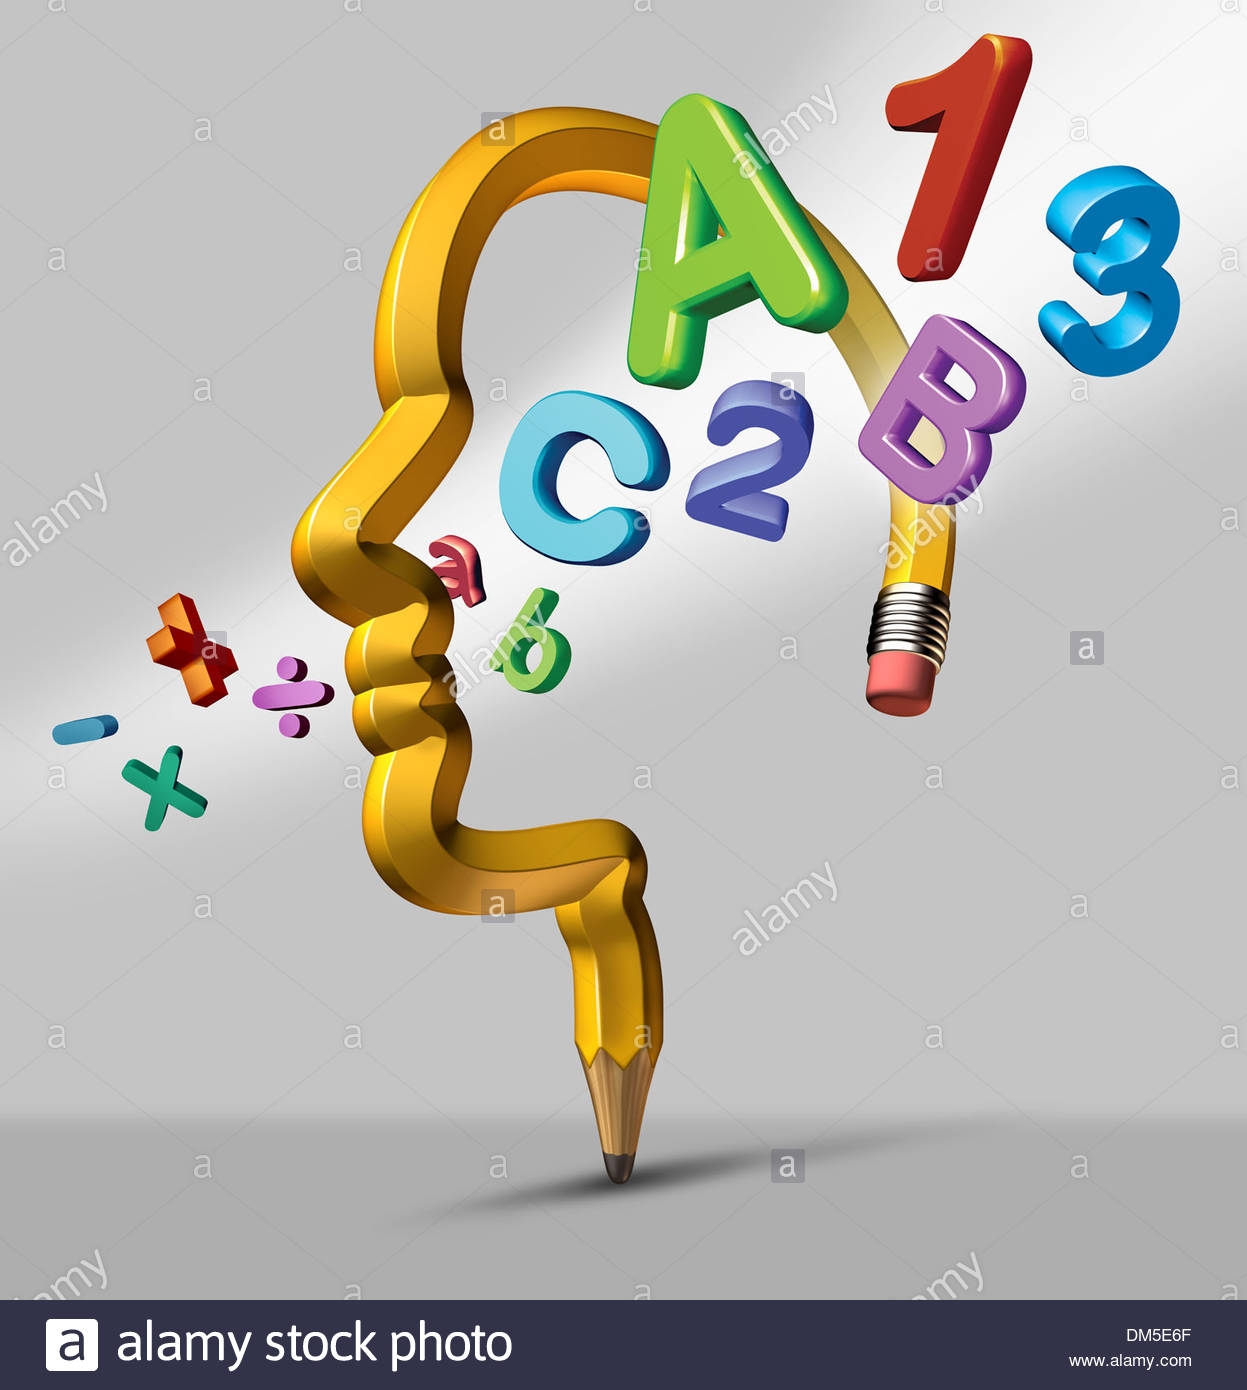 Images of math symbols free download best images of math symbols 1247x1390 math symbols stock photos amp math symbols stock images biocorpaavc